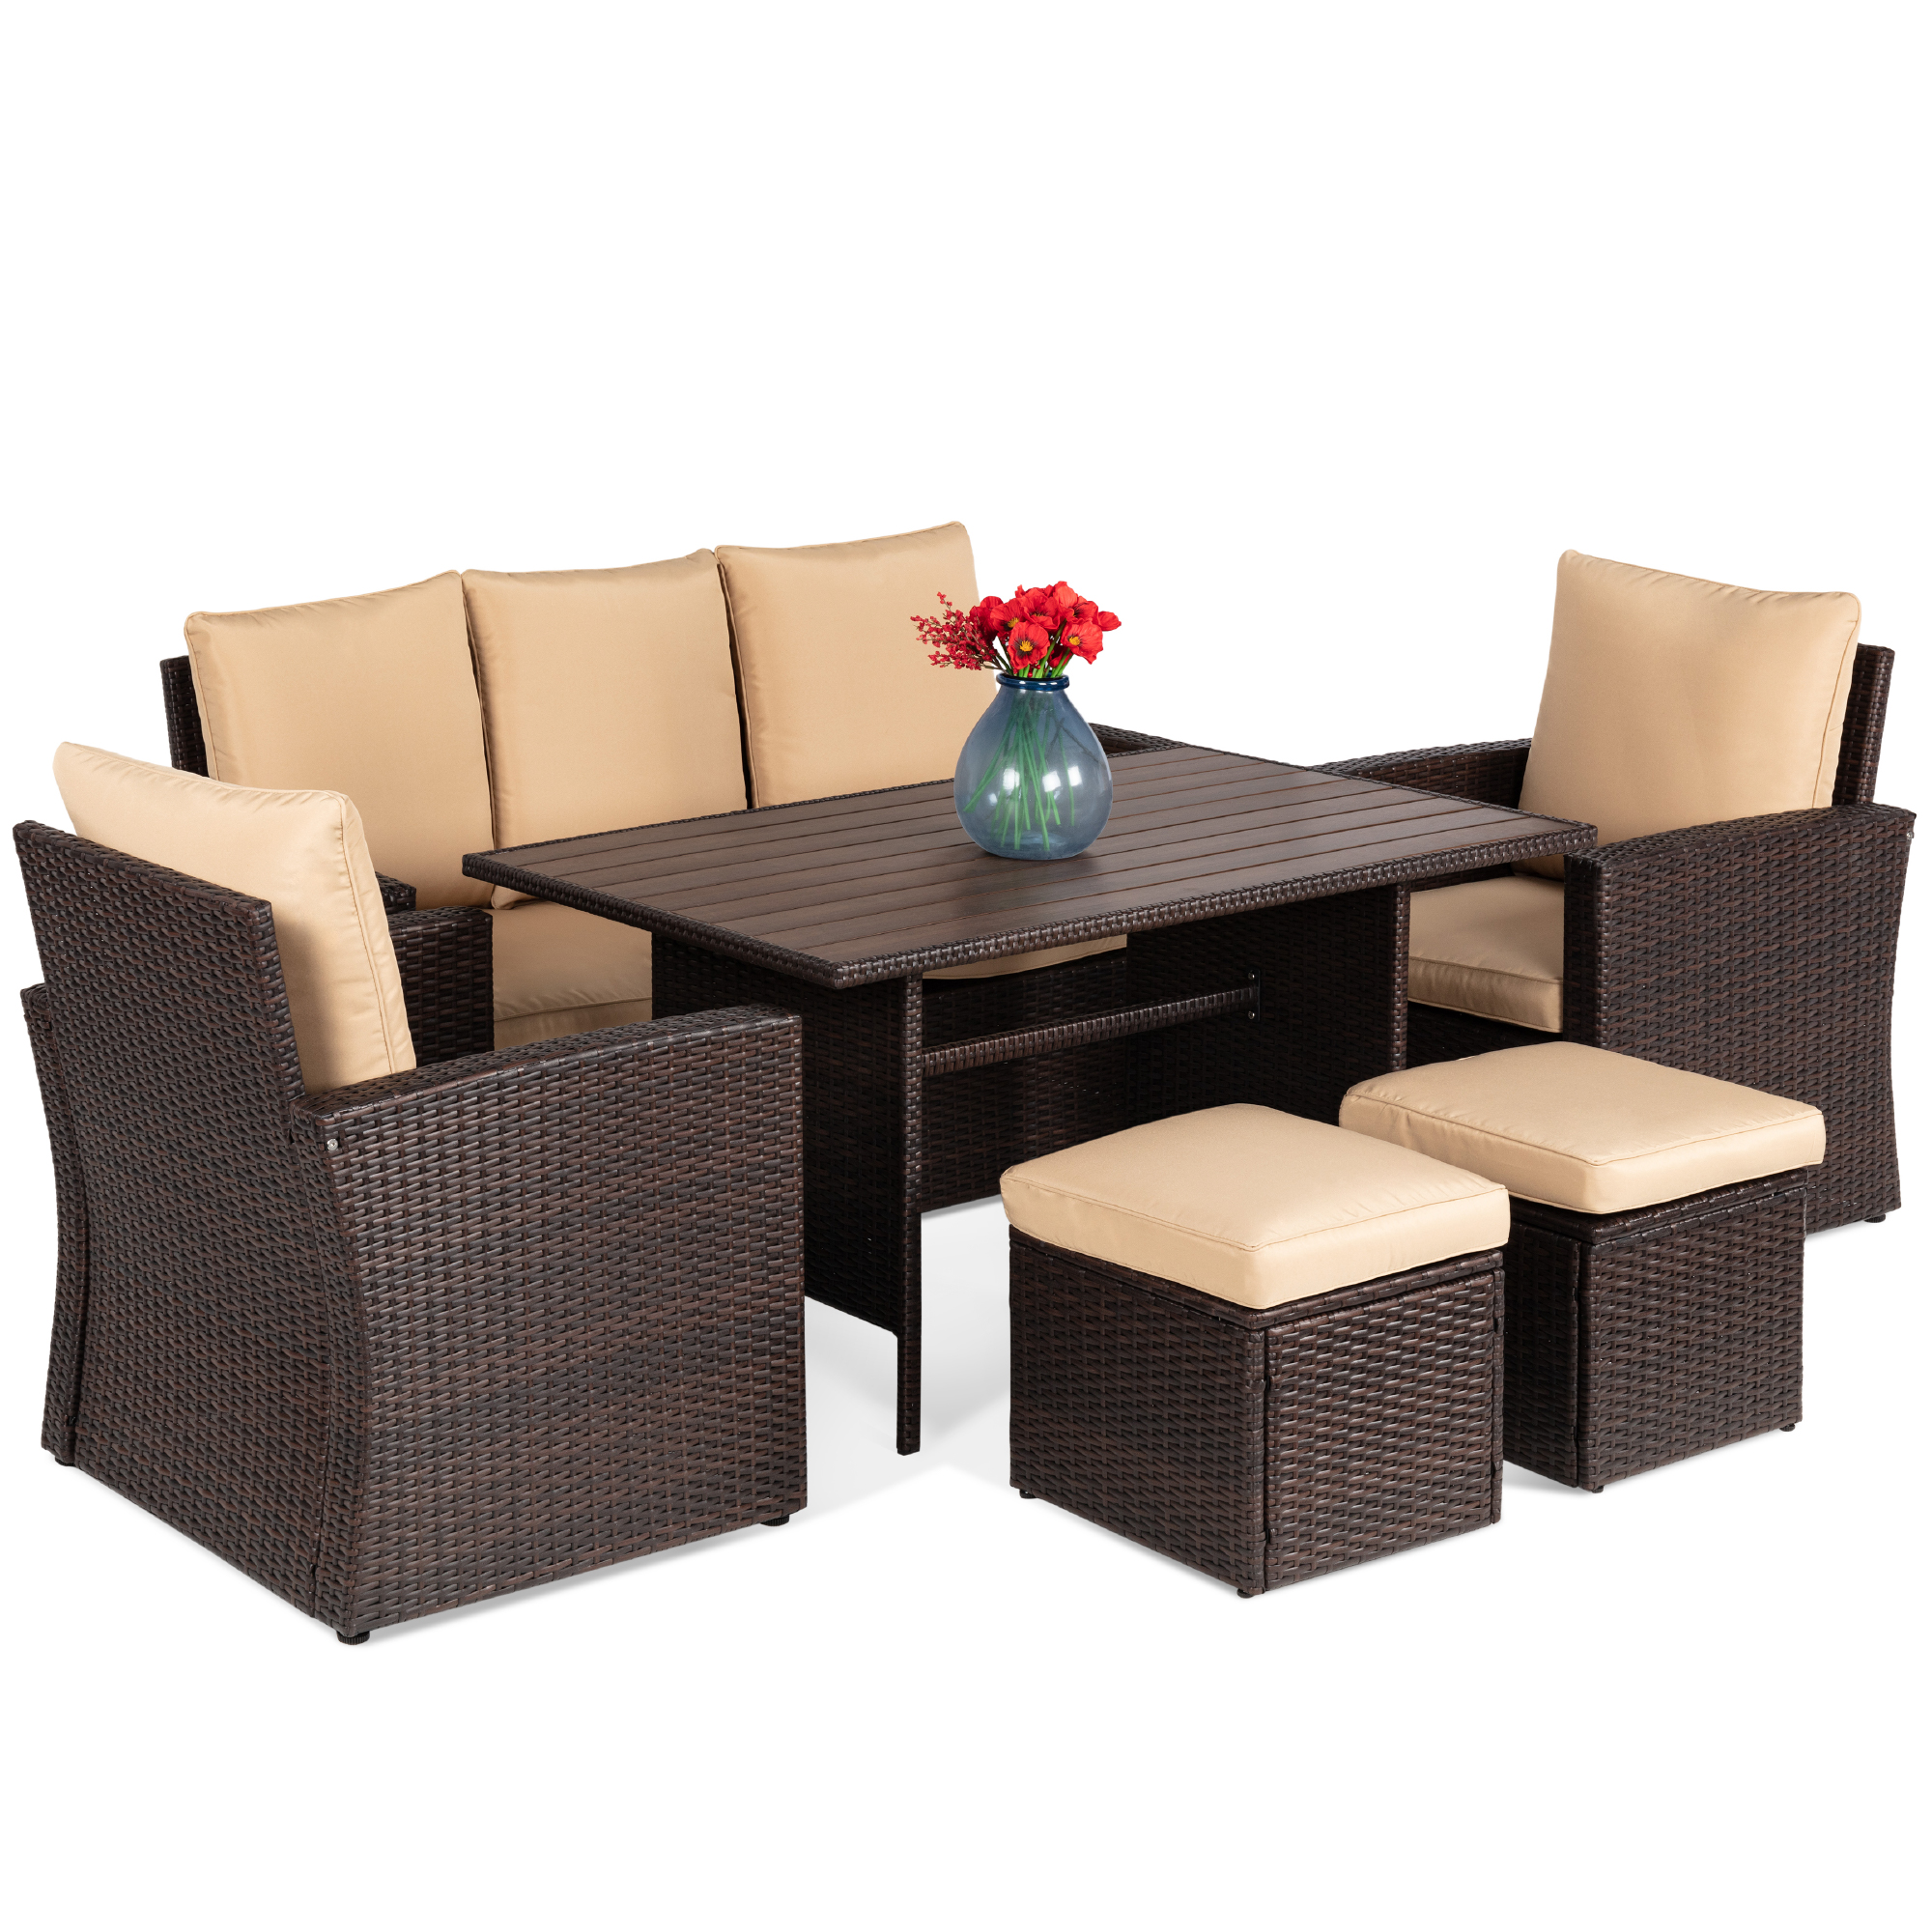 Best Choice Products 7 Seater Conversation Wicker Dining Table Outdoor Patio Furniture Set W Cover Brown Beige Walmart Com Walmart Com